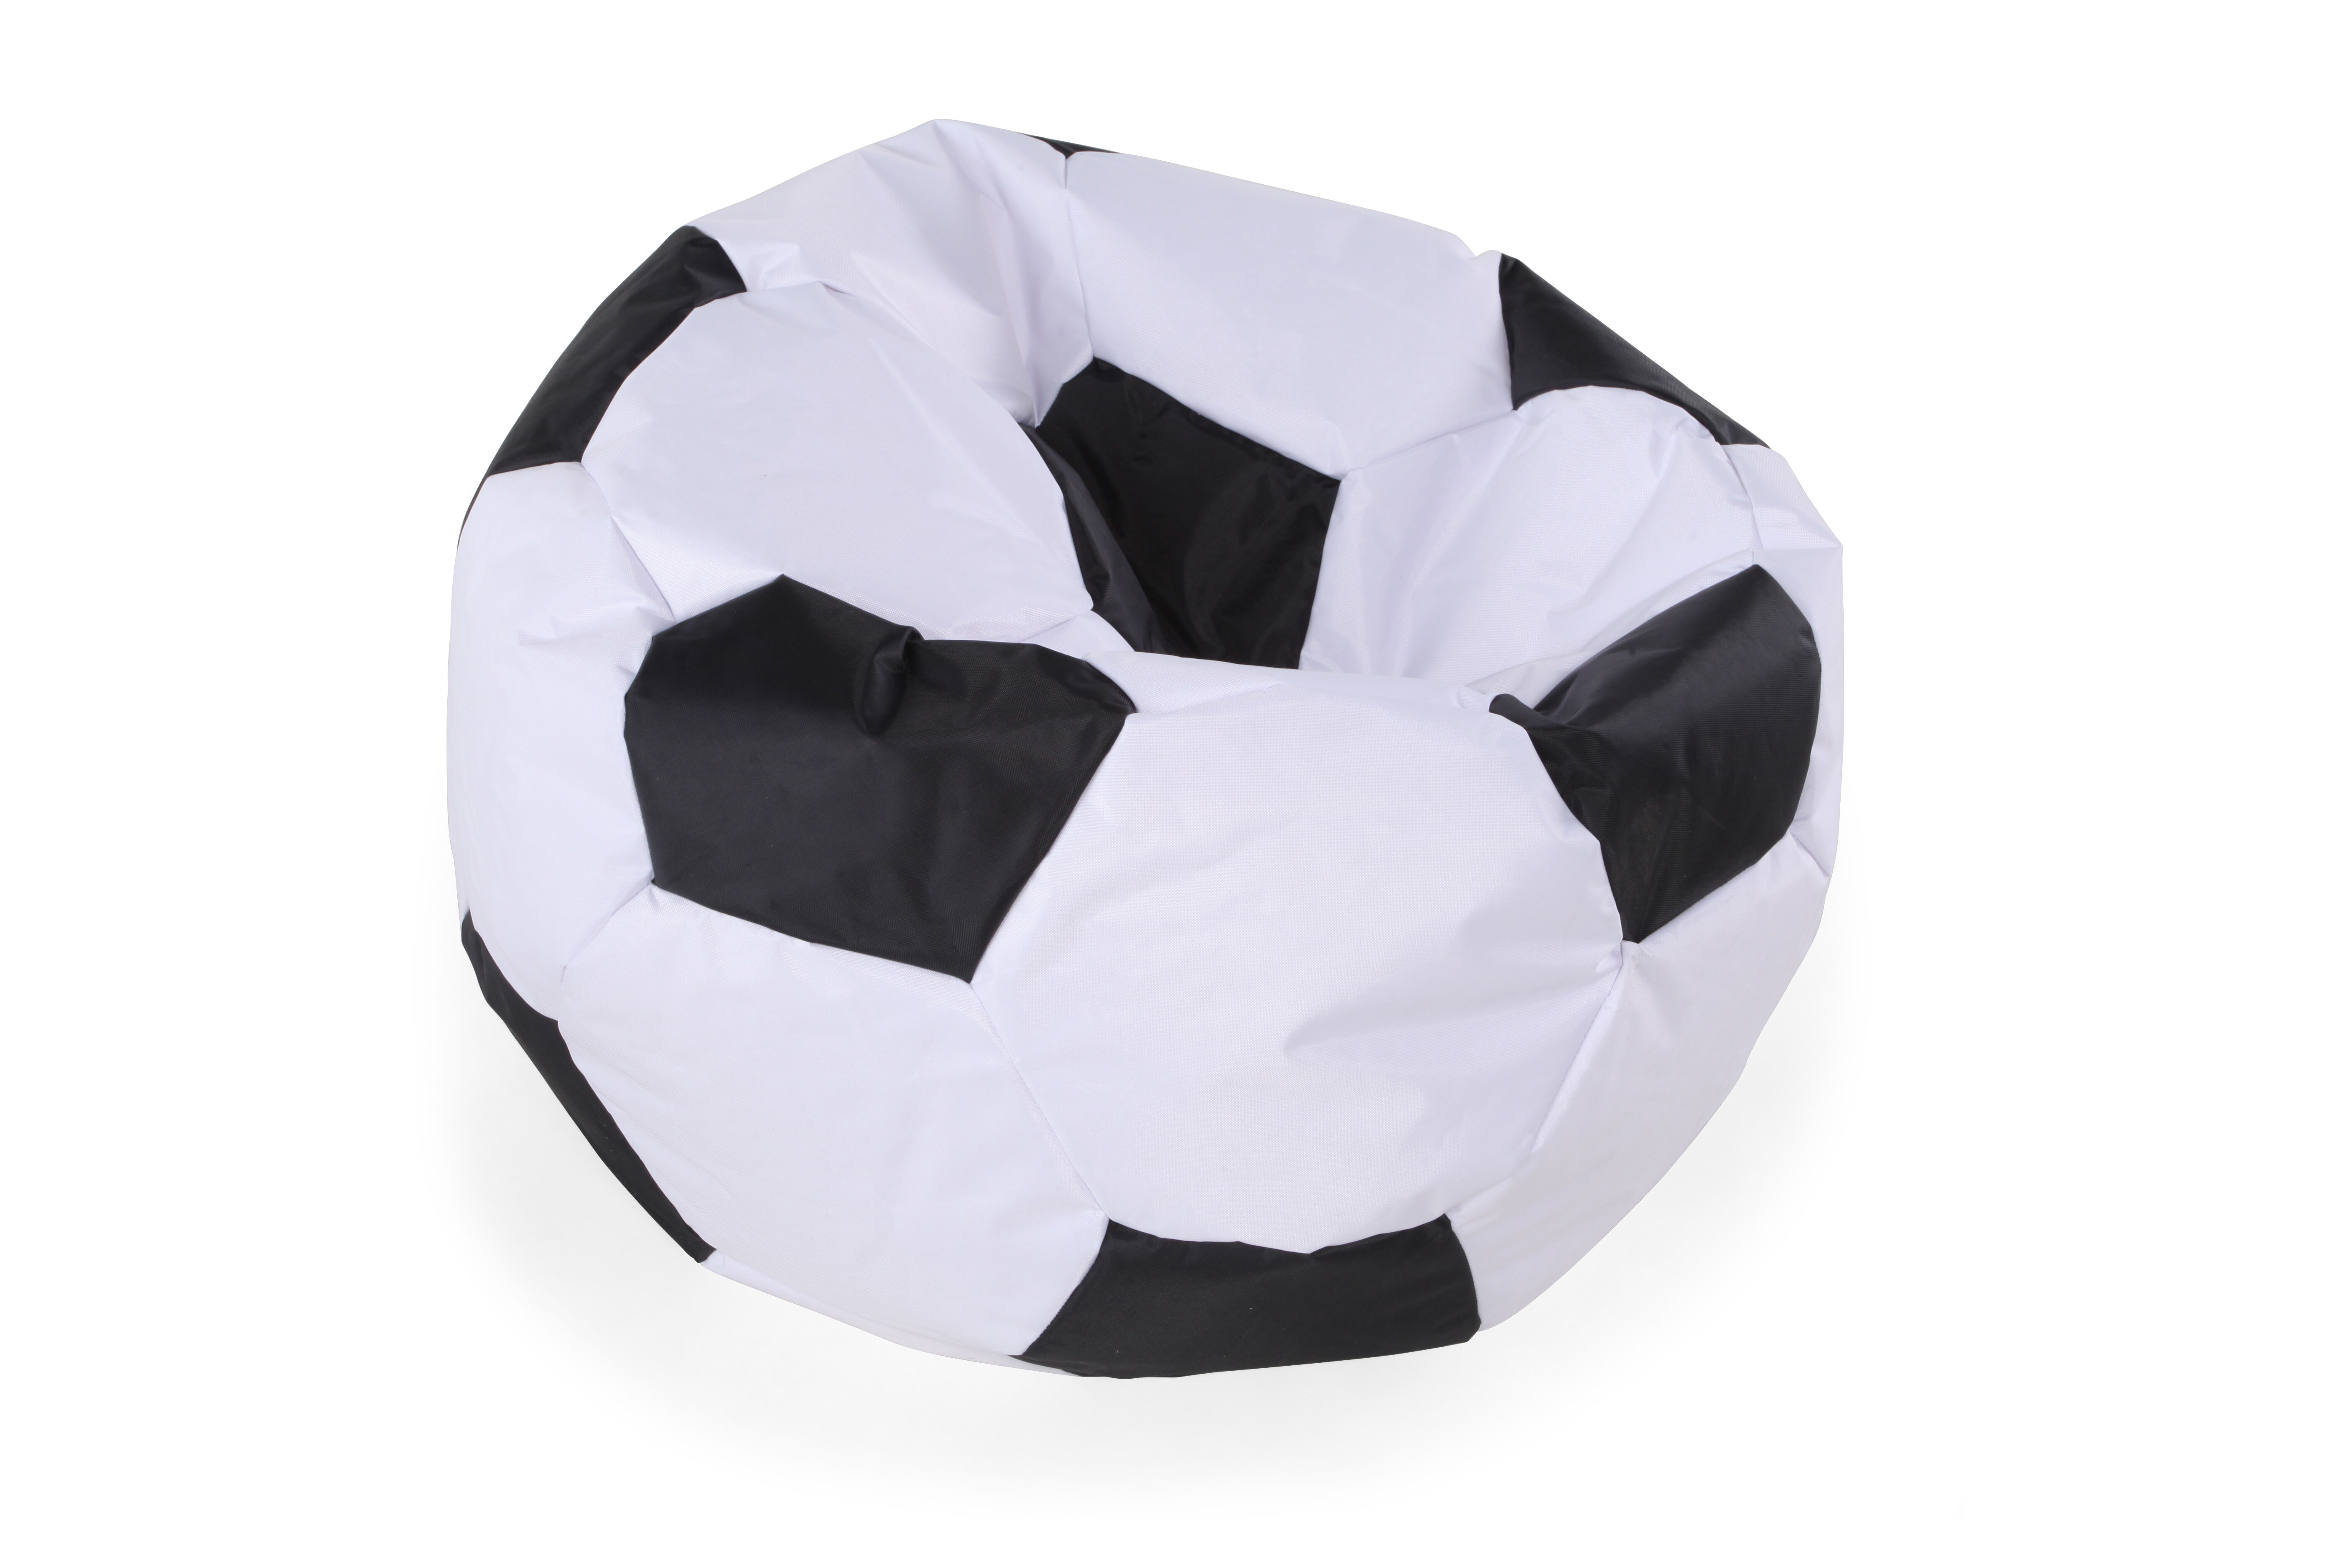 Genial Images Casual Soccer Ball Youth Bean Bag Chair In White Casual Soccer Ball  Youth Bean Bag Chair In White